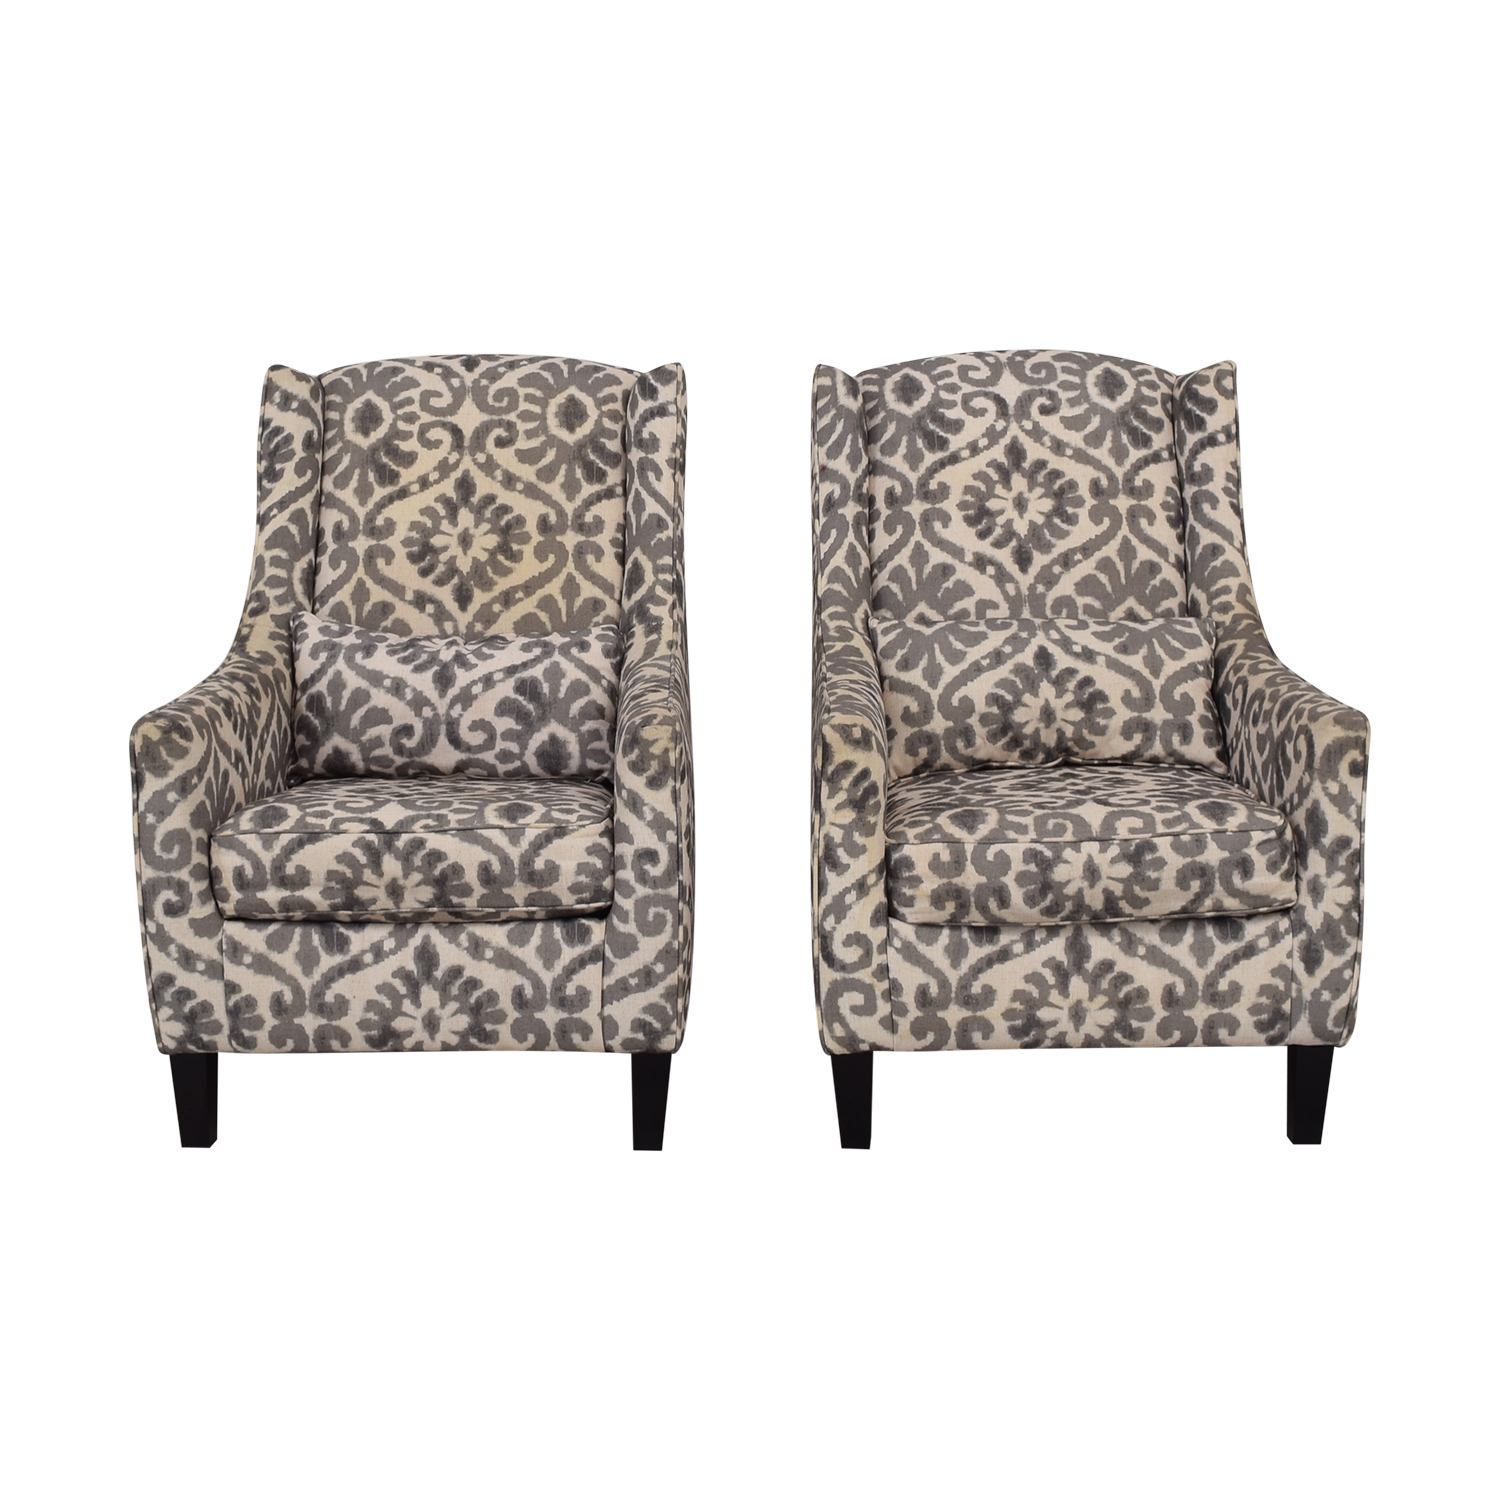 Ashley Furniture Ashley Furniture Grey and White Accent Chairs price